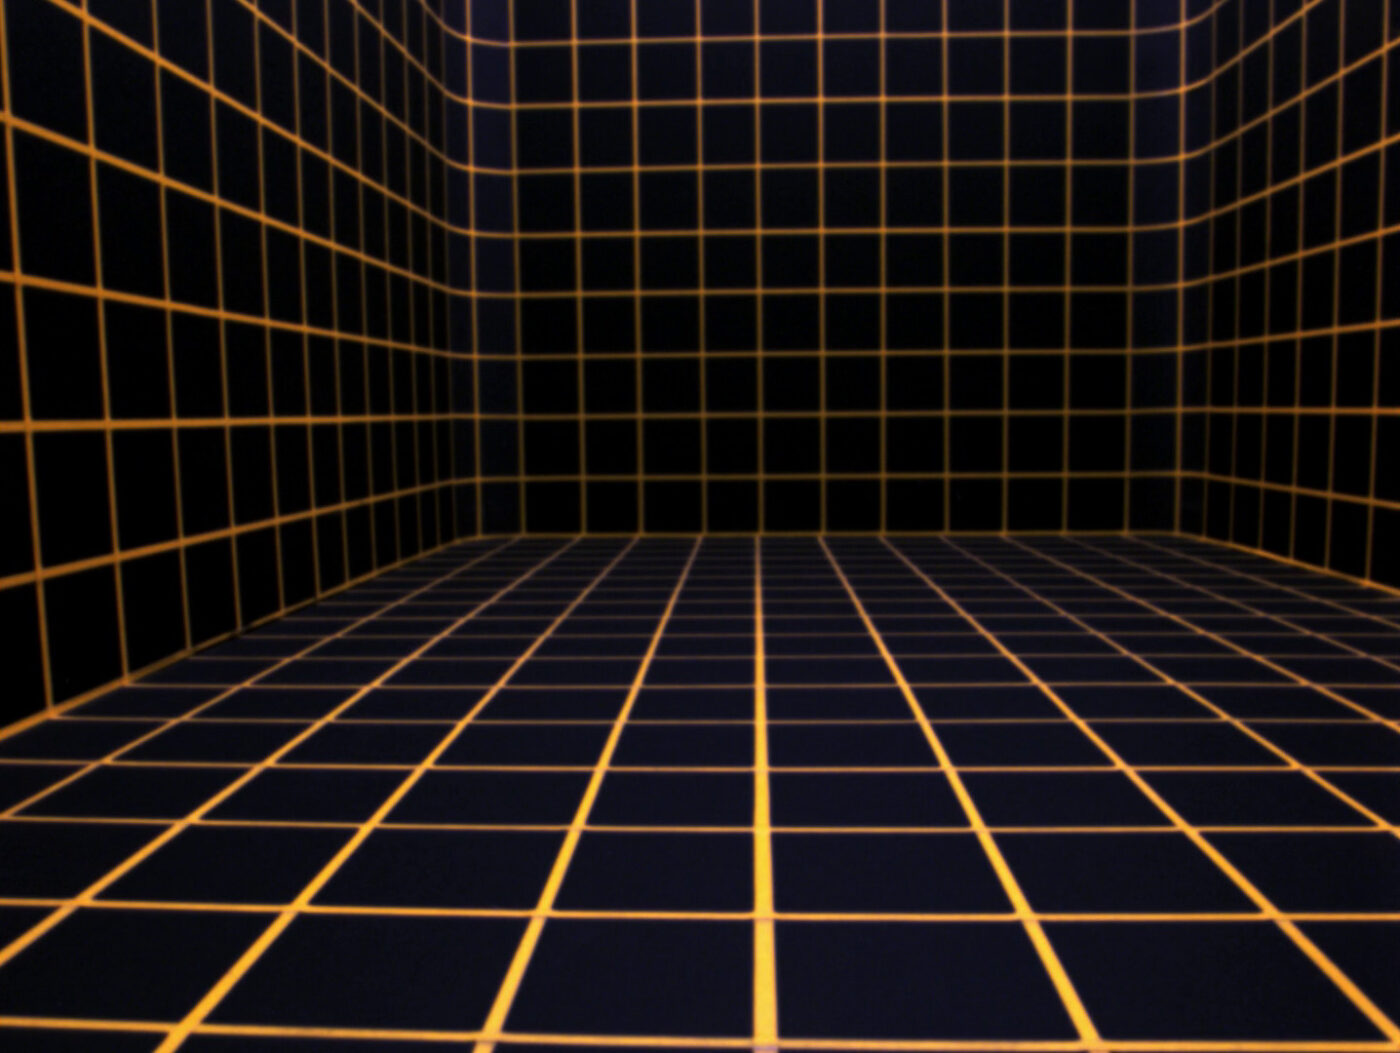 Star Trek Holodeck Virtual Background from TrekCore